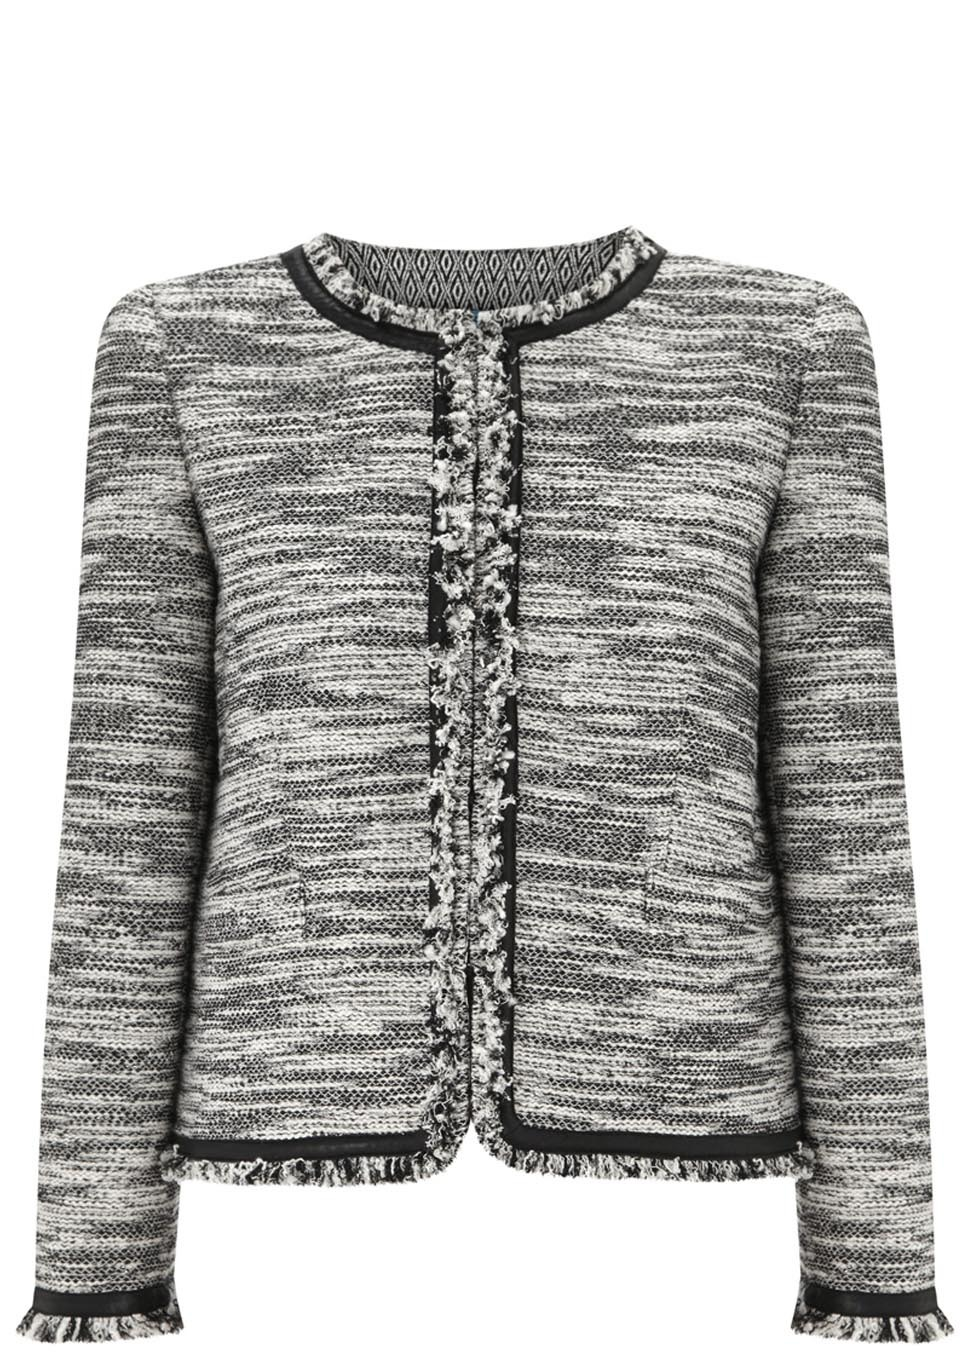 Kidman Monochrome Tweed Jacket Size - style: single breasted blazer; collar: round collar/collarless; pattern: herringbone/tweed; predominant colour: mid grey; secondary colour: black; occasions: casual, work, creative work; length: standard; fit: tailored/fitted; fibres: cotton - 100%; sleeve length: long sleeve; sleeve style: standard; collar break: high; pattern type: fabric; texture group: tweed - light/midweight; season: s/s 2014